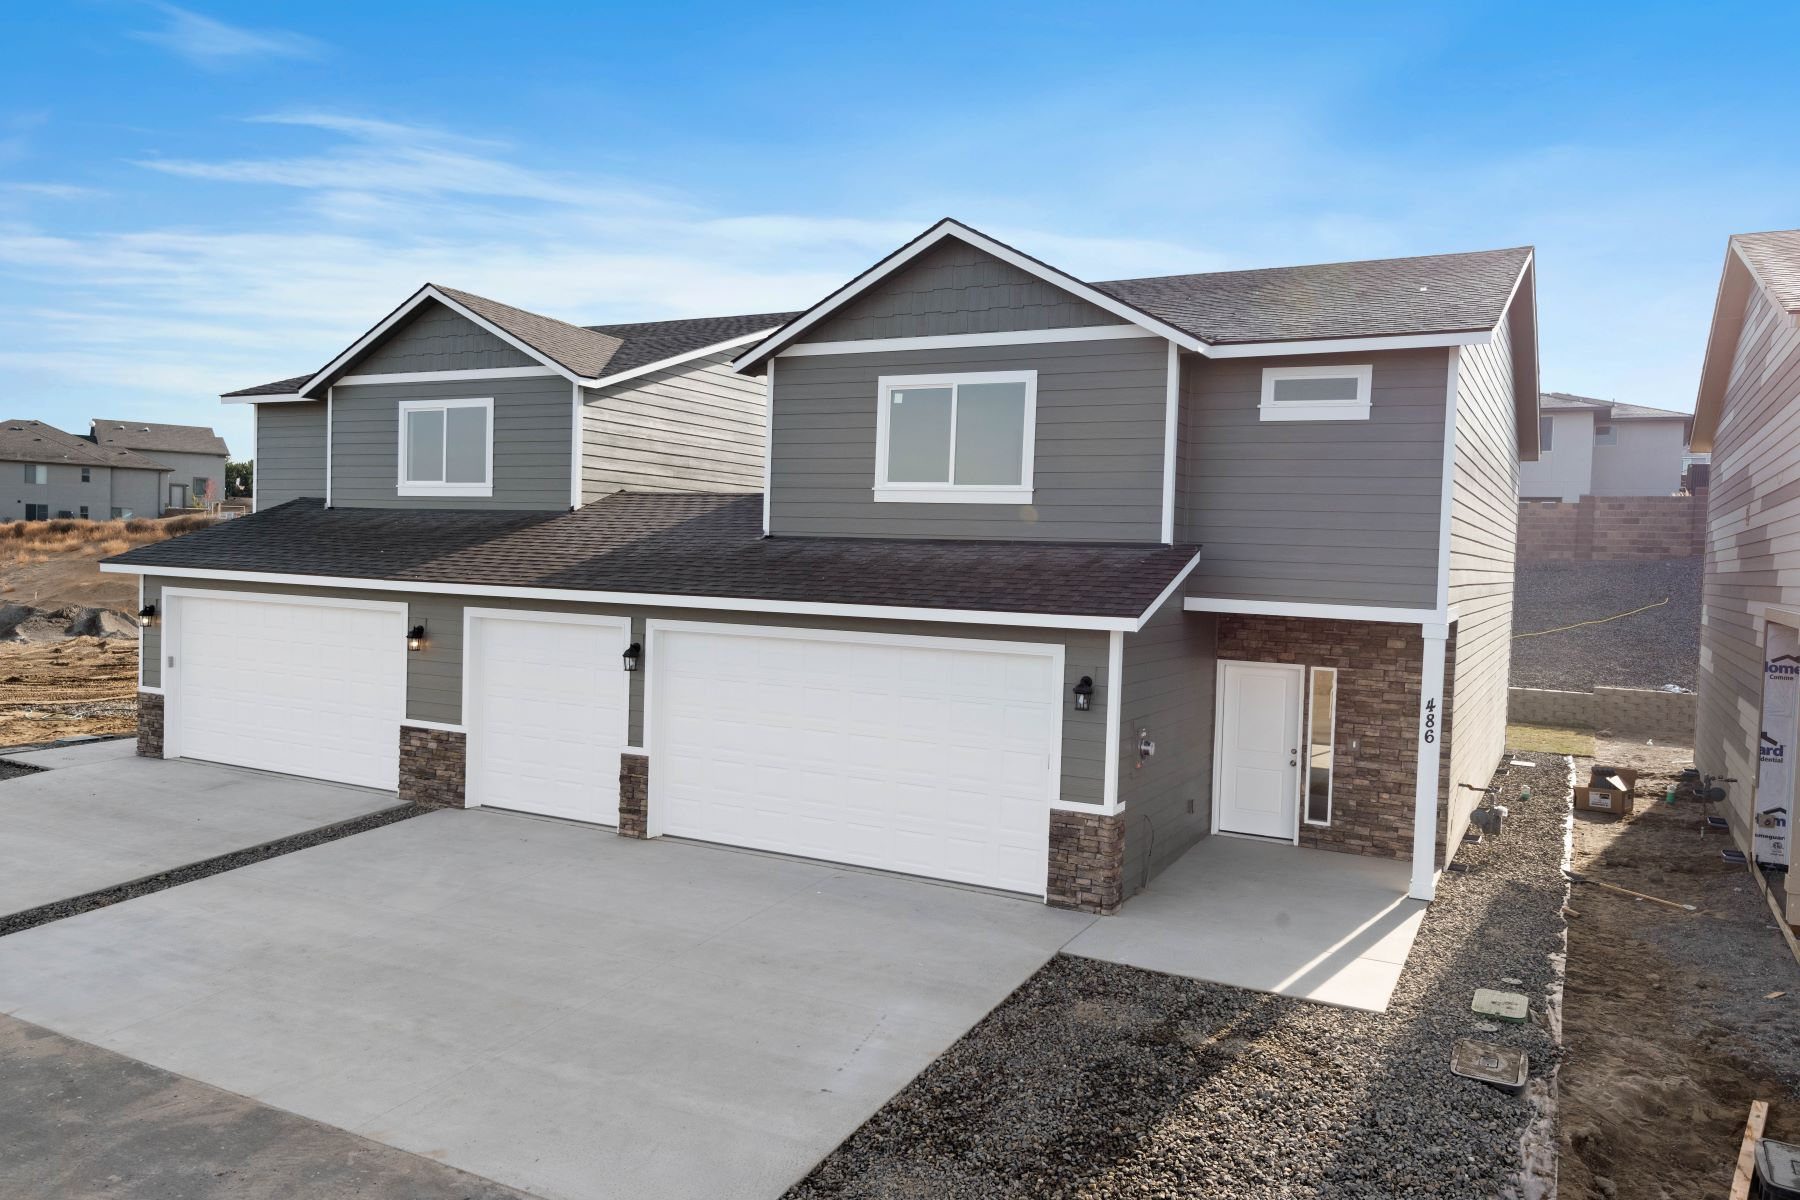 townhouses for Sale at New townhome community with views! 434 Bedrock Loop West Richland, Washington 99353 United States